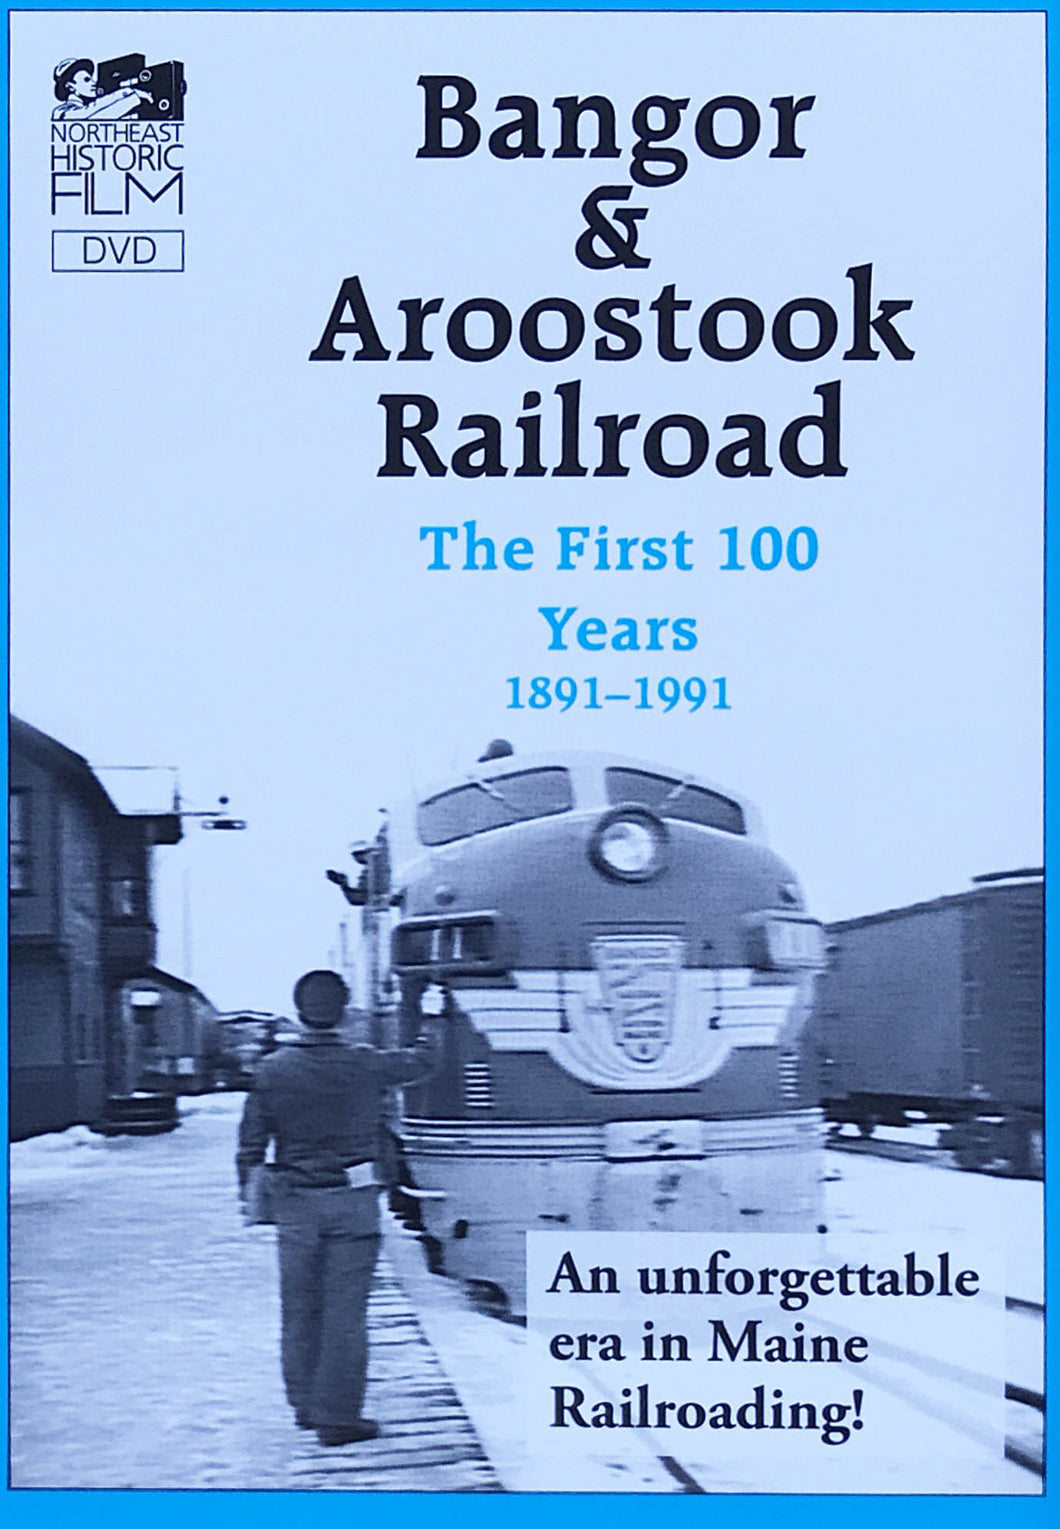 Bangor & Aroostook Railroad: The First 100 Years 1891-1991